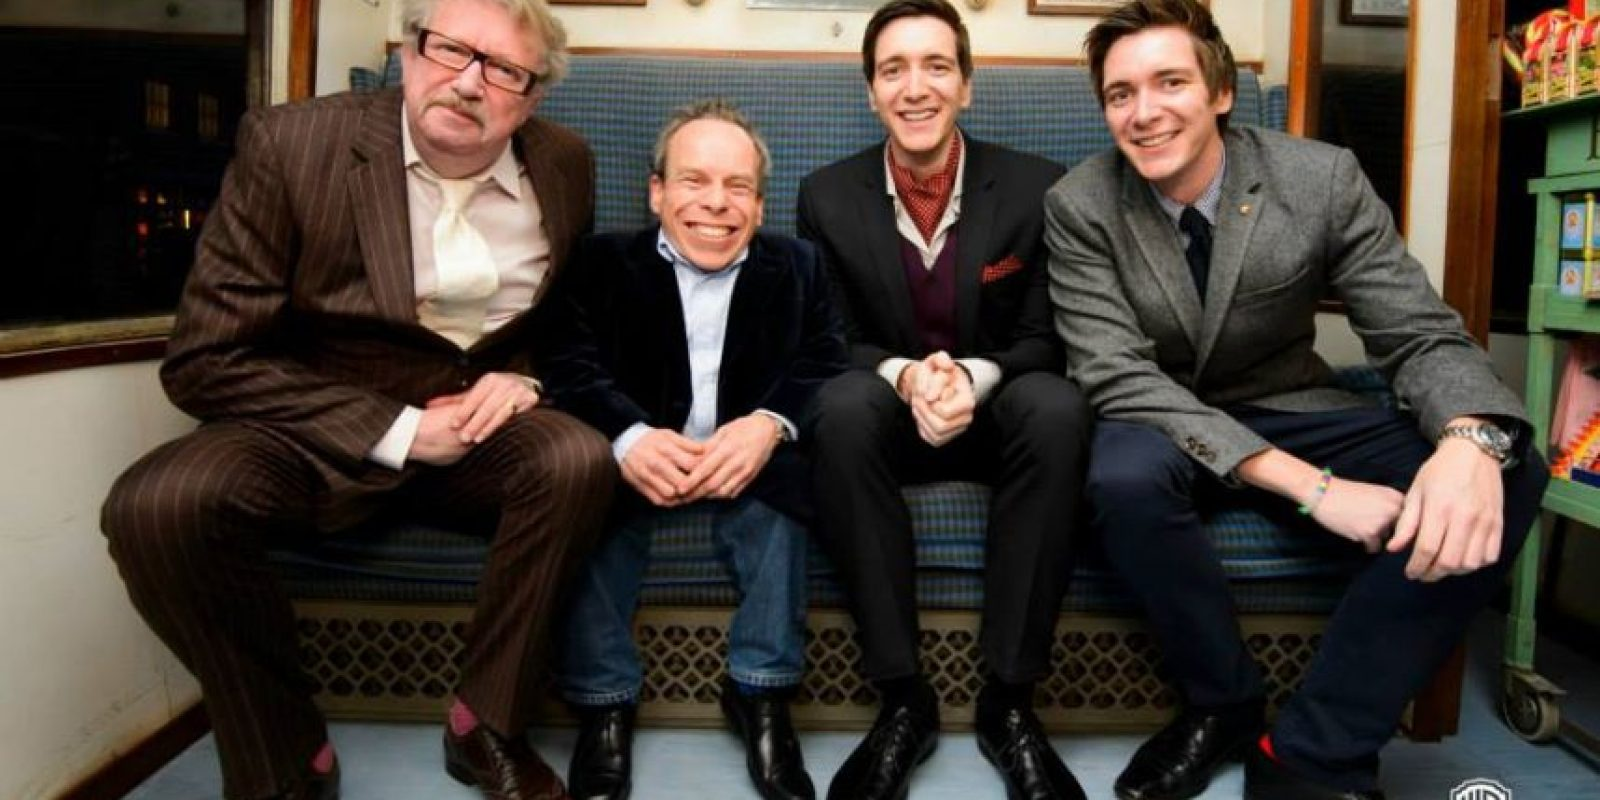 Mark Williams, Warwick Davis, James y Oliver Phelps Foto: Facebook/wbtourlondon